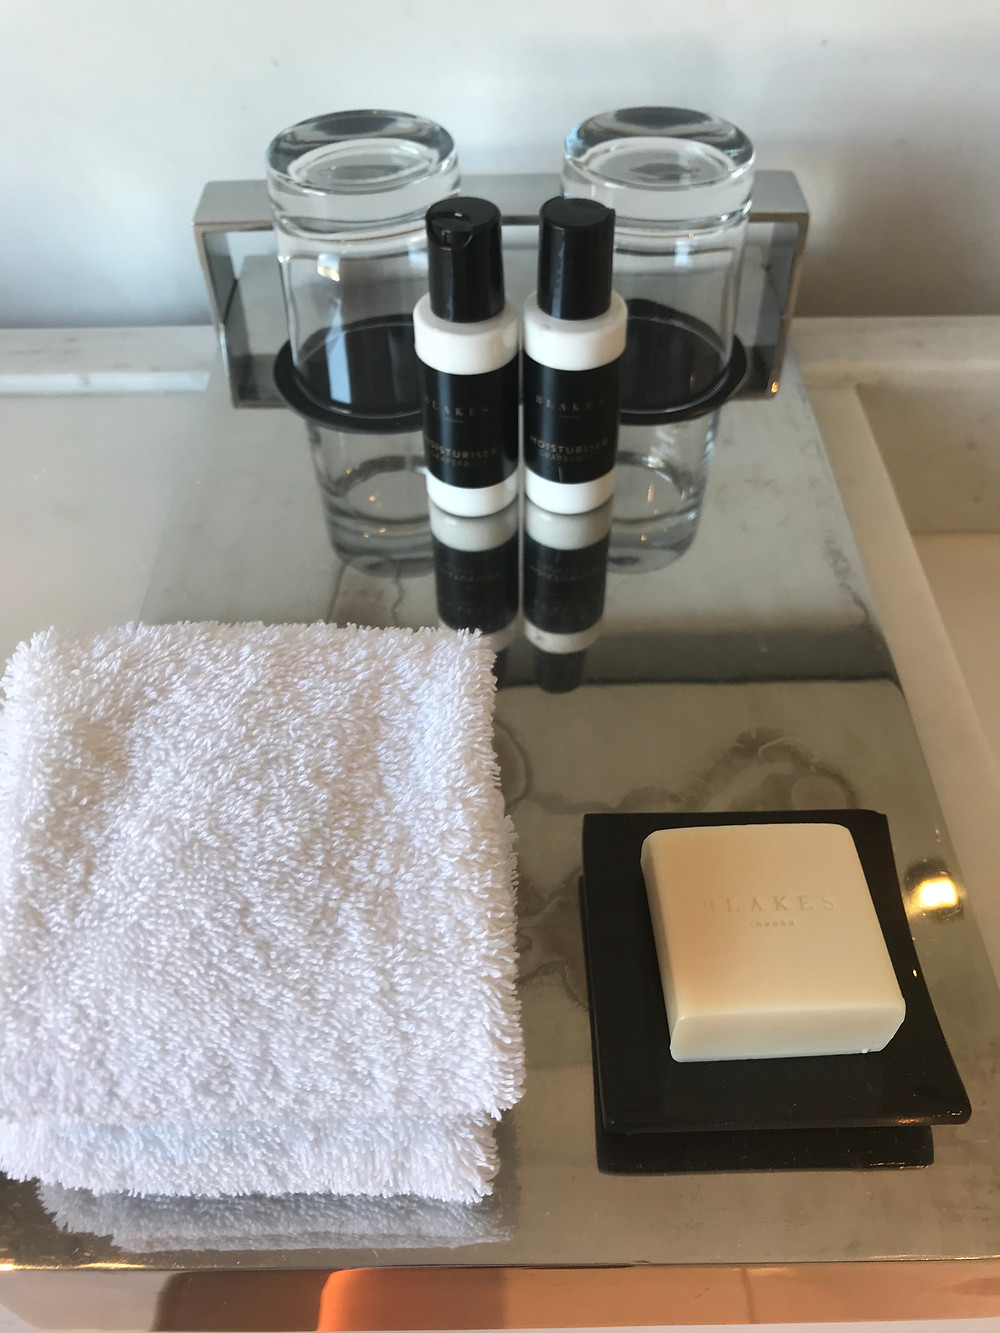 Blakes bespoke bath amenities